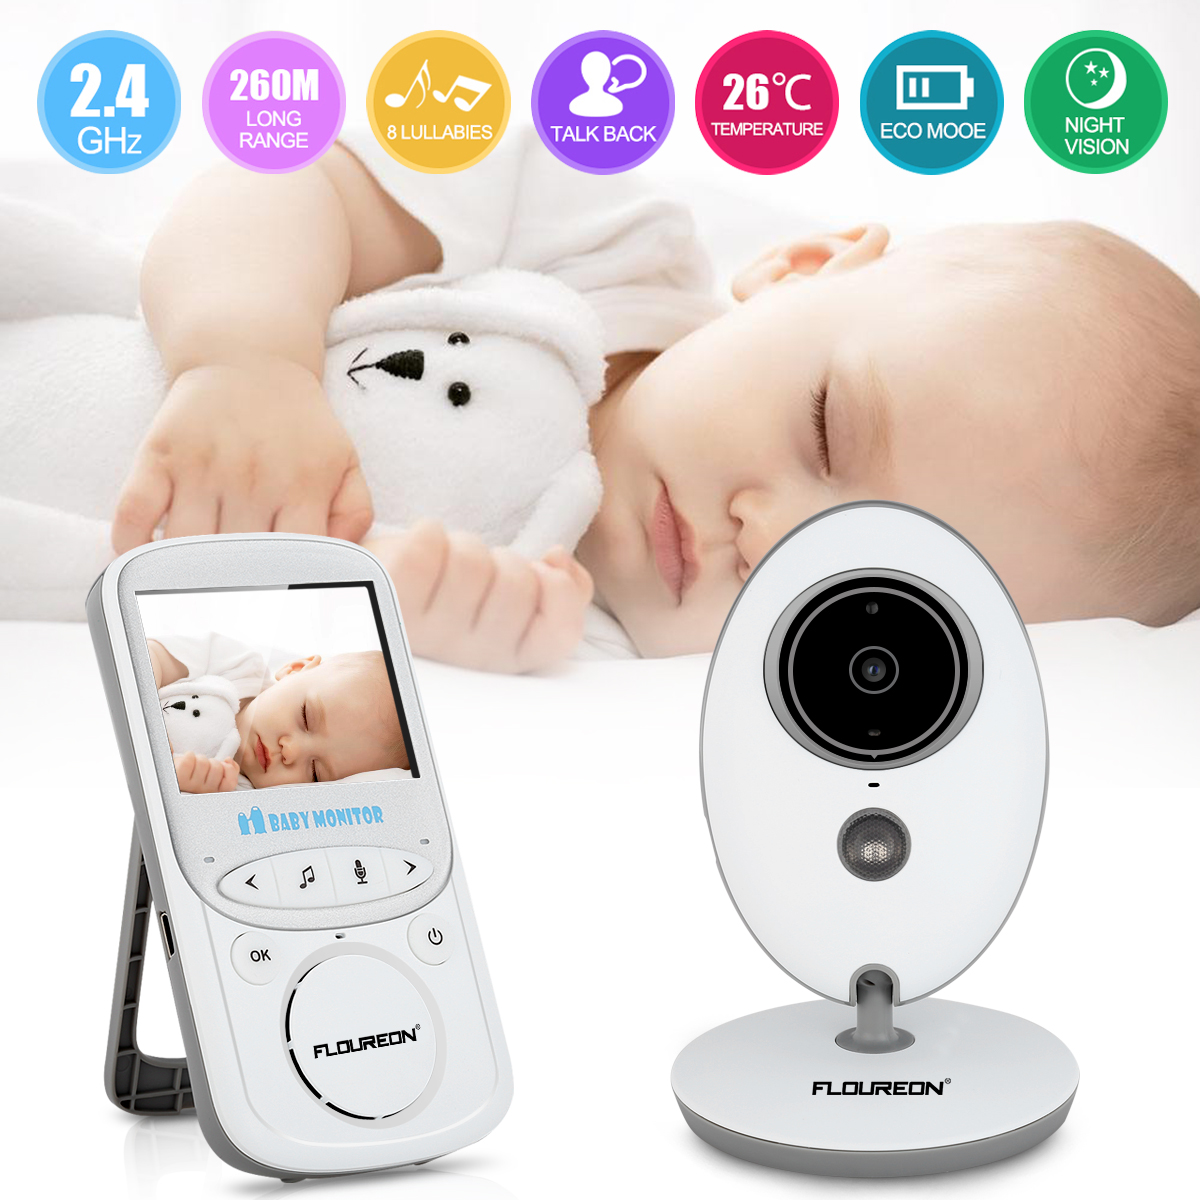 FLOUREON Video Baby Monitor Wireless with Digital Camera Night Vision 2 Way Audio Temperature Monitoring Lullabies Long Range and High Capacity Battery for Security 2.4 inch LCD Screen